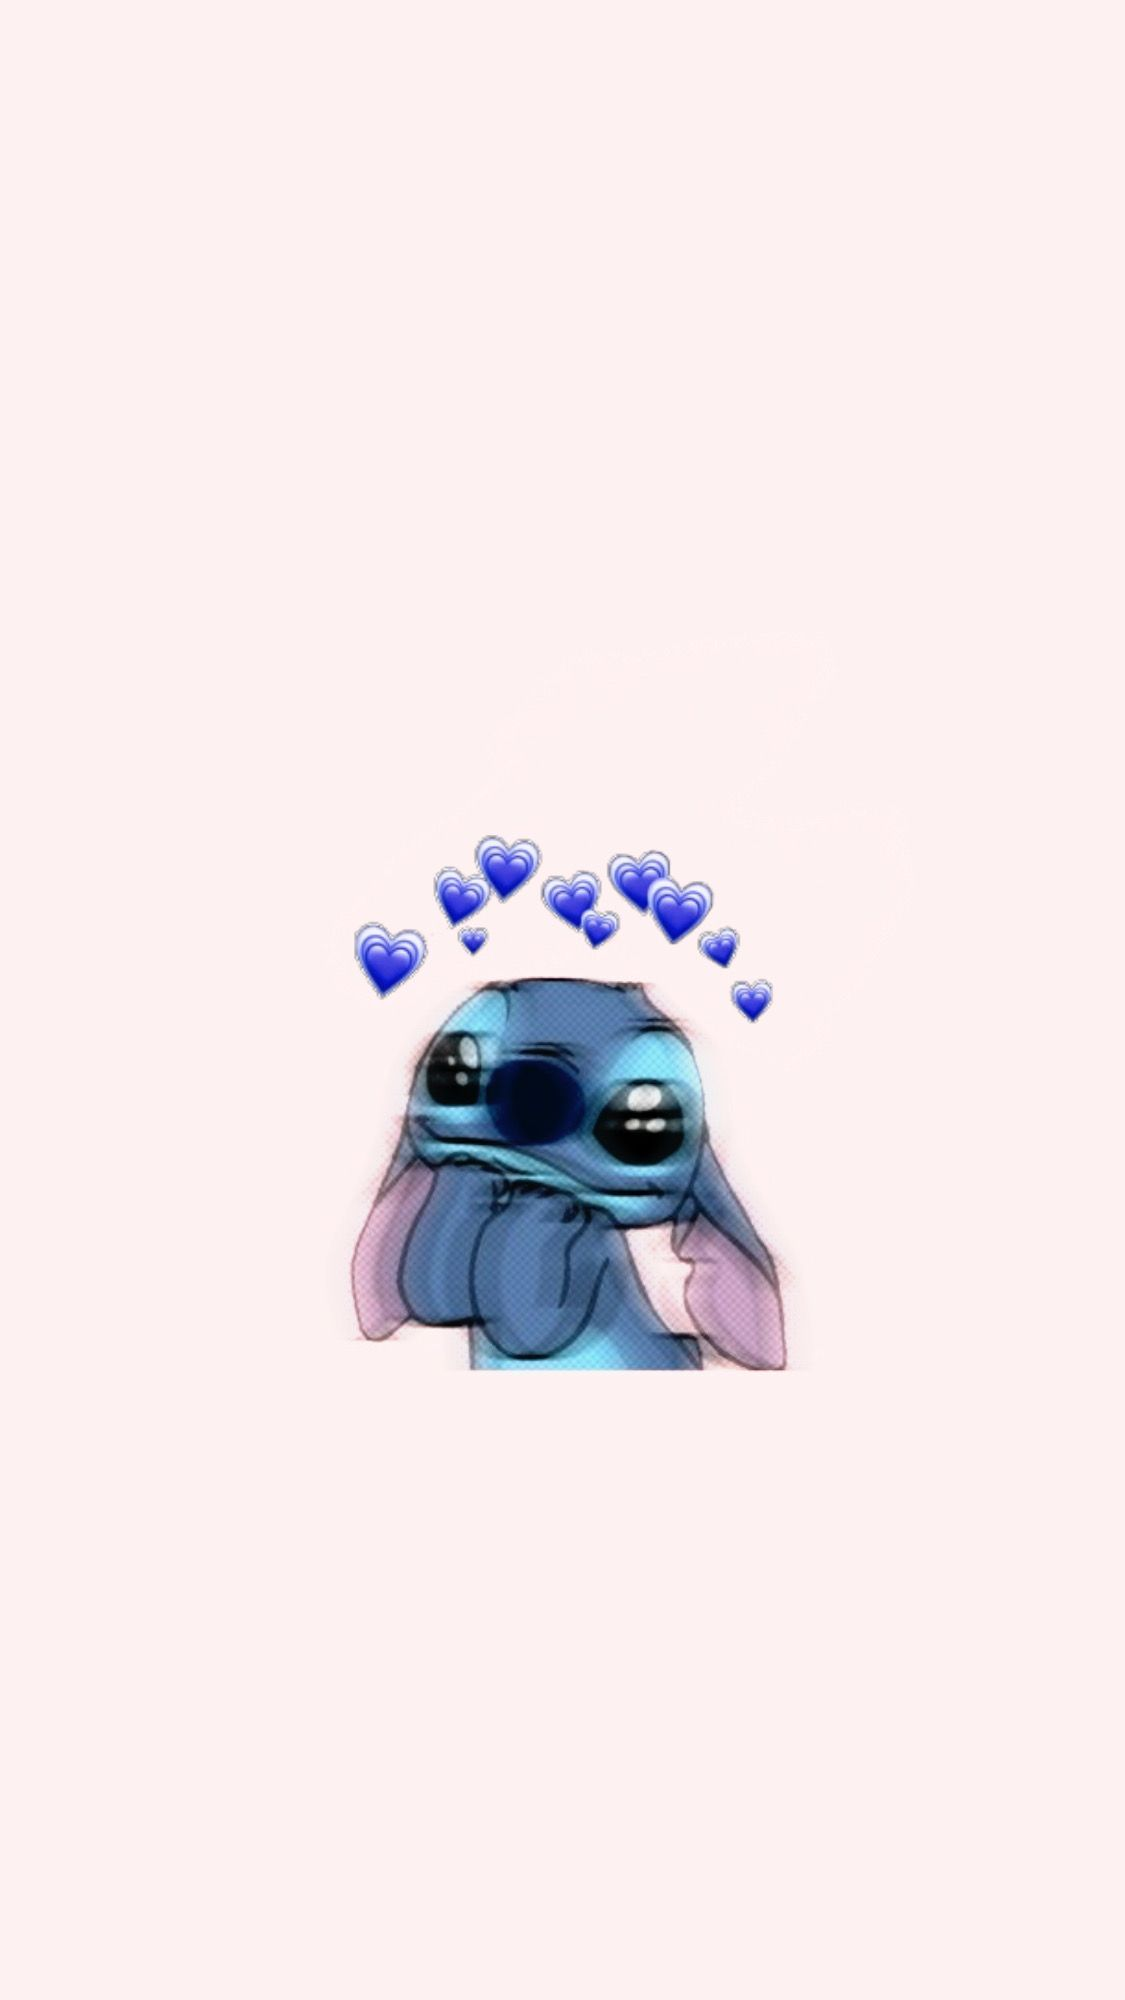 Stitch Aesthetic Wallpapers   Top Stitch Aesthetic 1125x2000